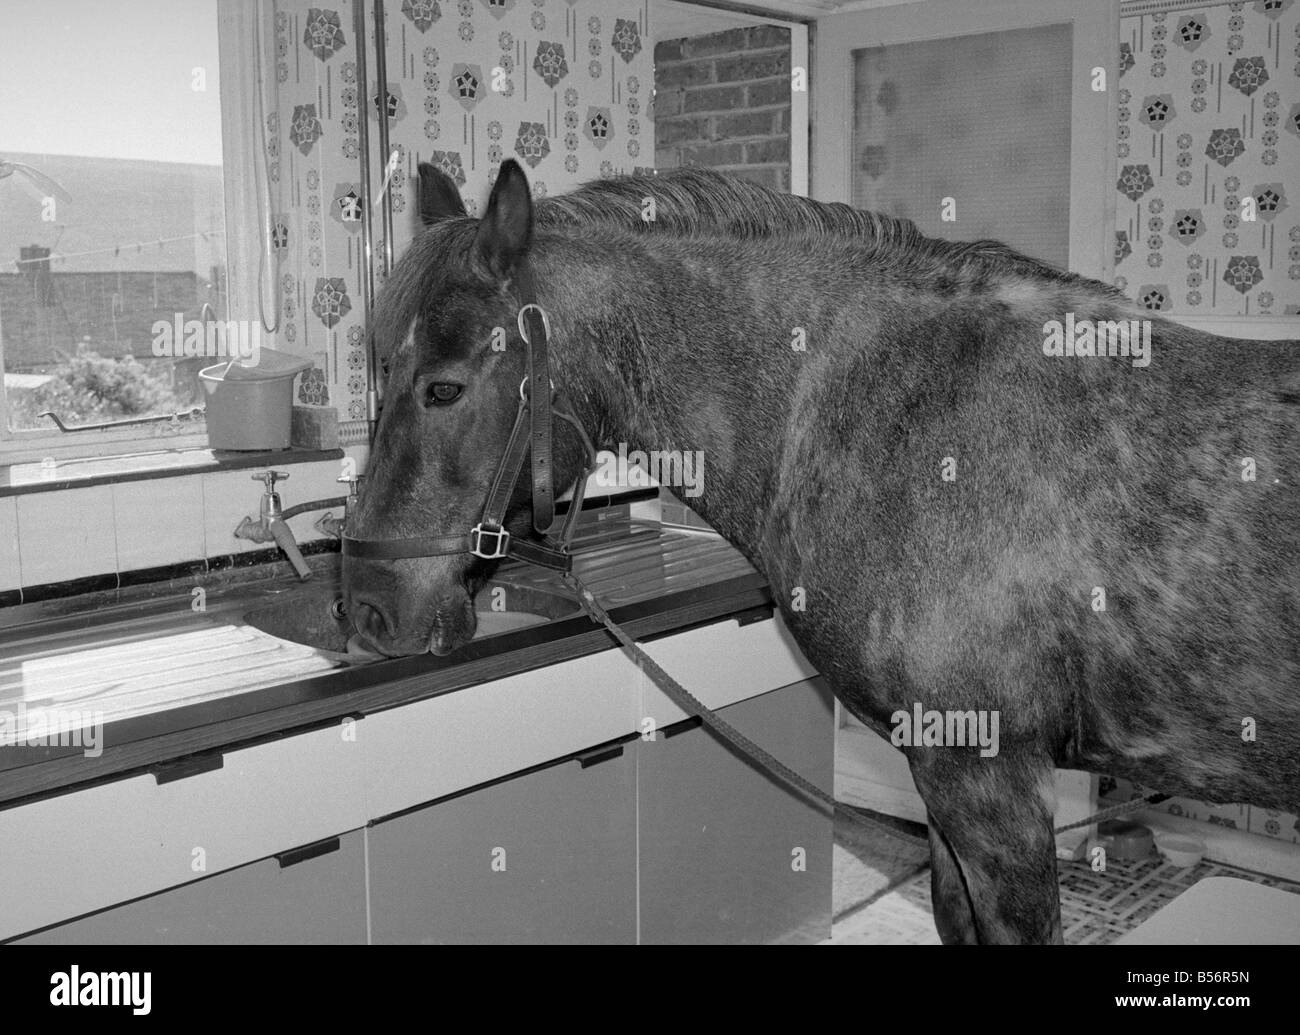 Sam The Pet Pony Having A Drink Of Water In The Kitchen Sink Of His Owners  House In Woodingdean, Brighton;May 1977;77 3036 013